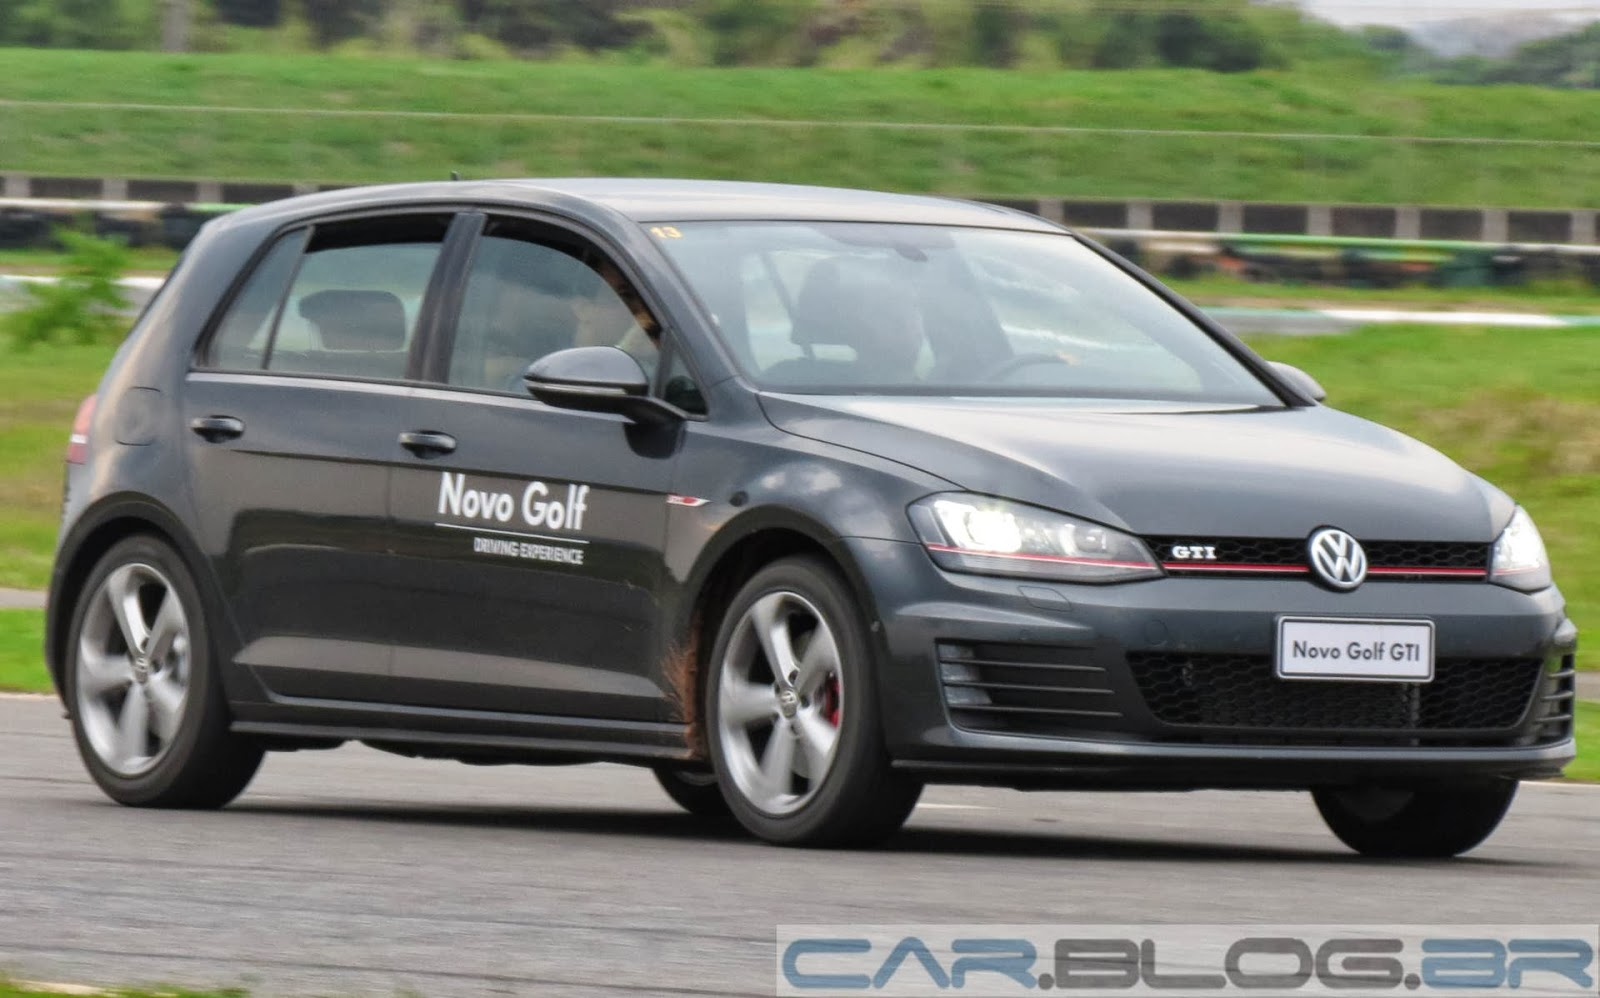 VW Golf GTI - interior - painel x Mercedes A250 Sport